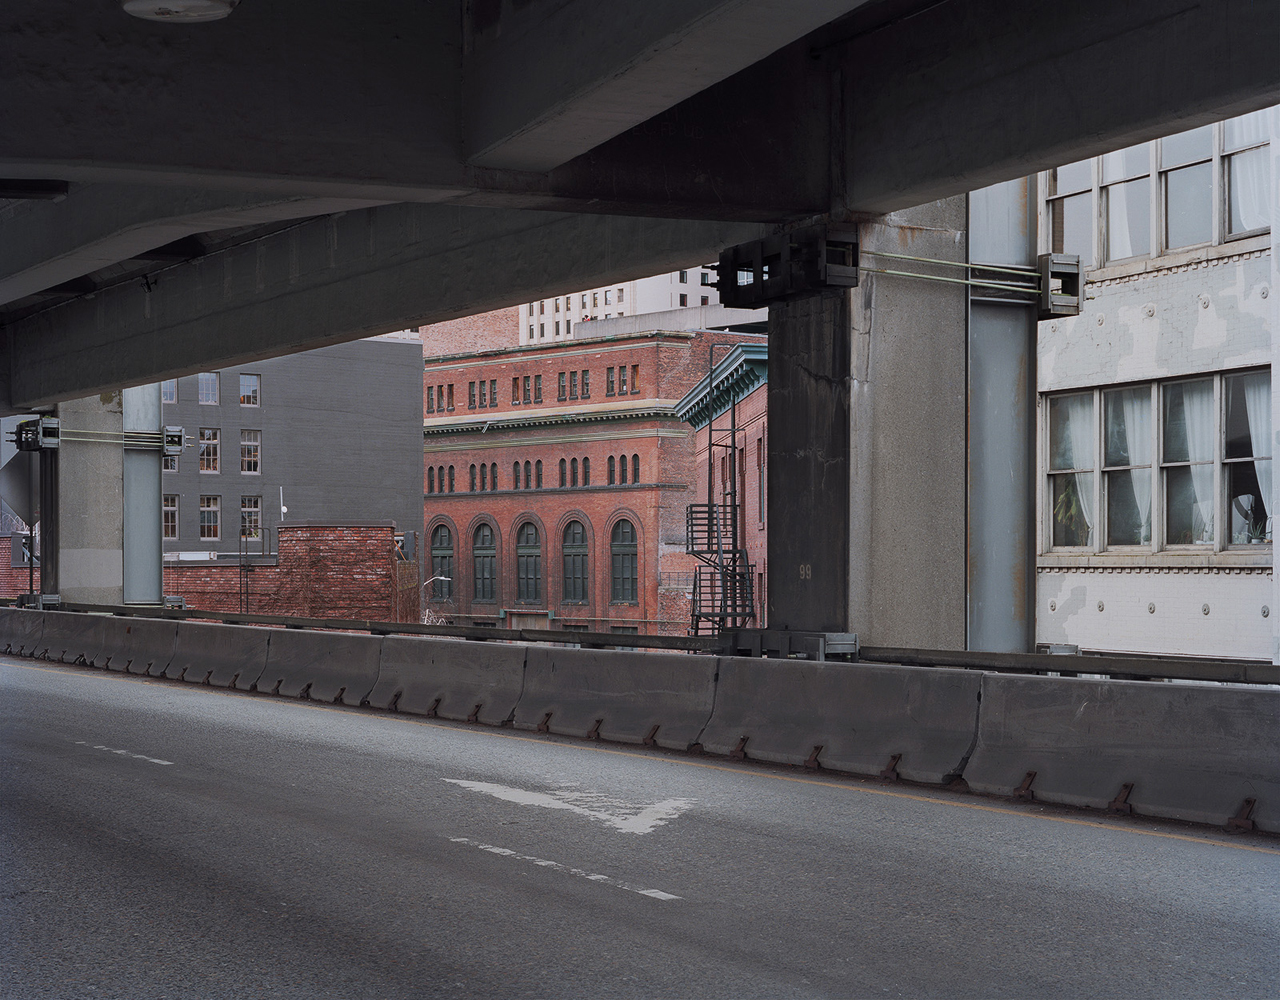 Eirik Johnson, Viaduct G, 2019